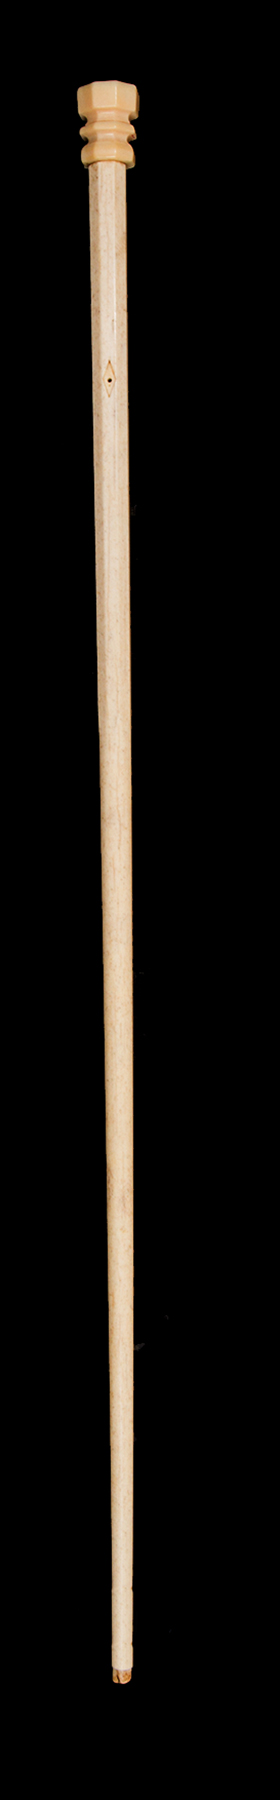 Antique and Quality Modern Cane Auction - 2b.jpg